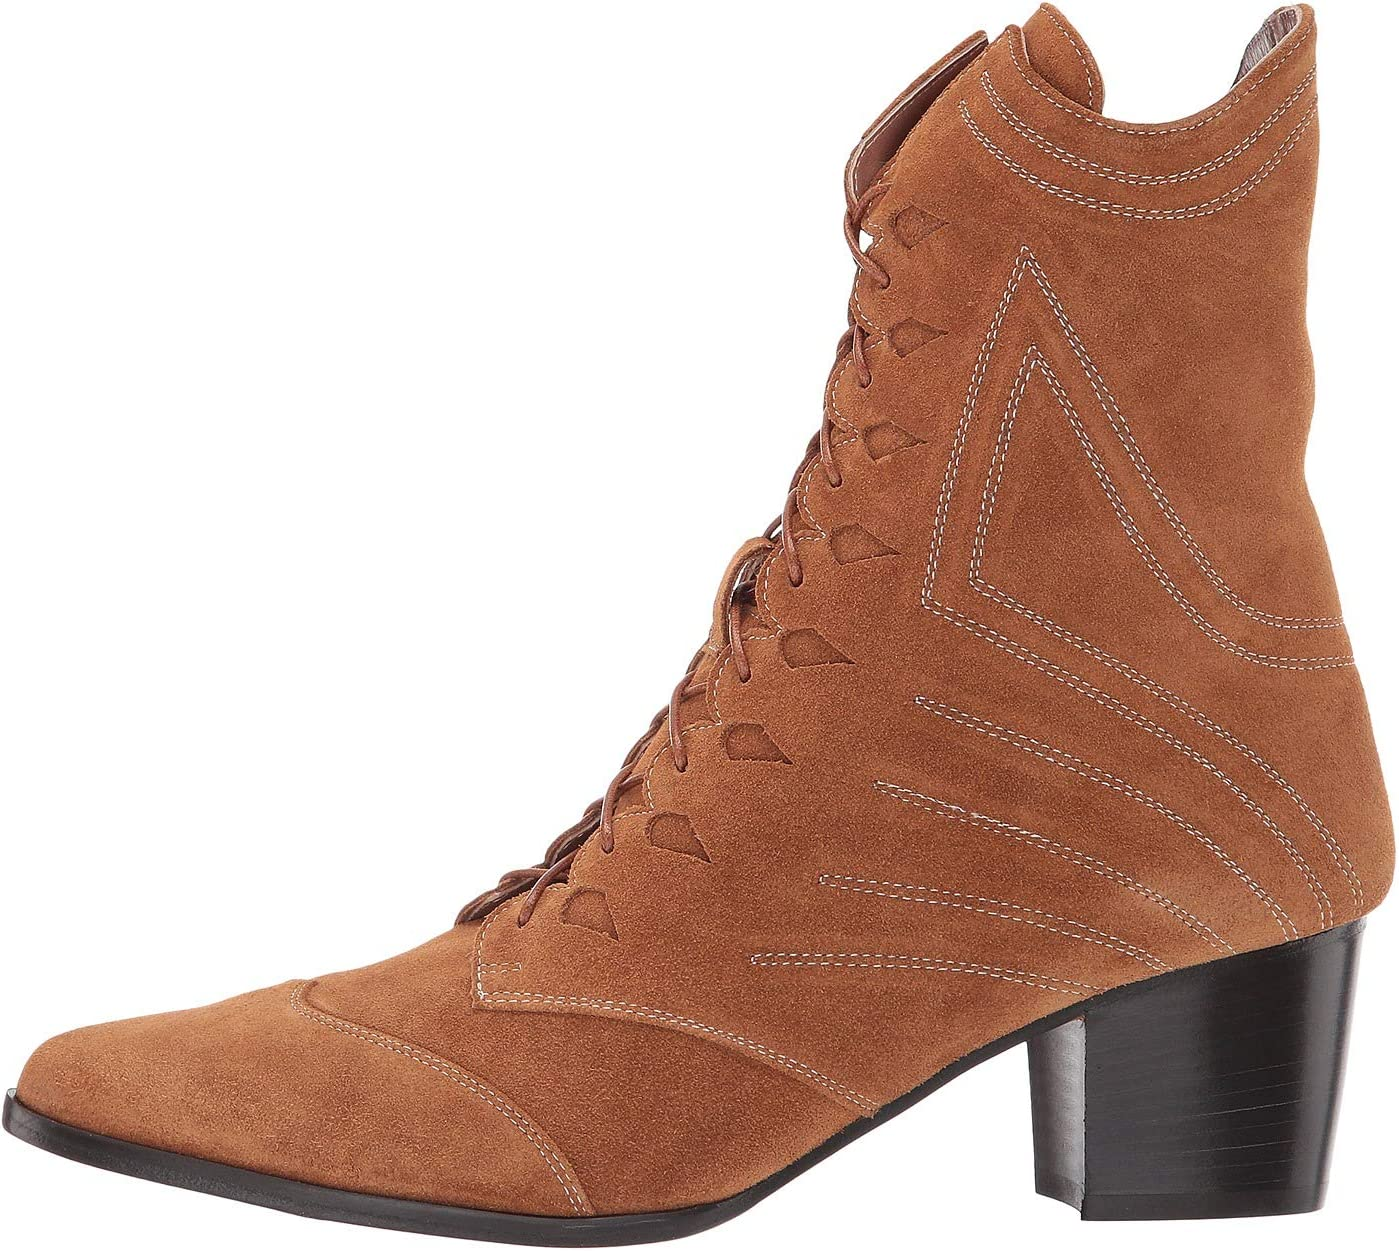 Tabitha Simmons Swing | Women's shoes | 2020 Newest